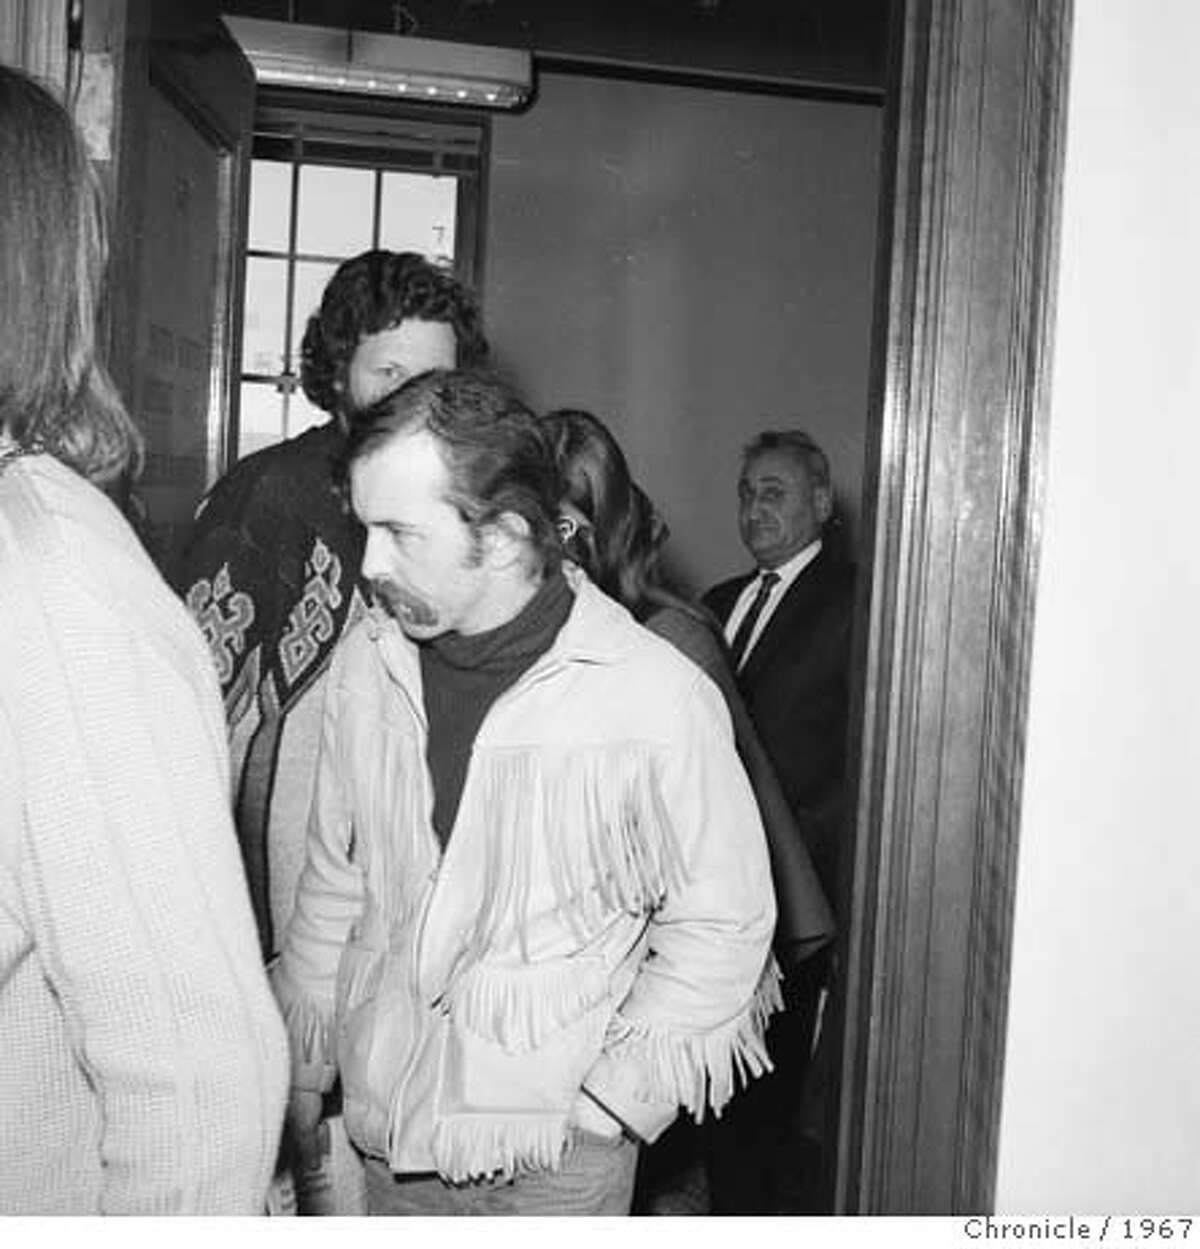 Stanley Owsley, during his LSD arraignment December 23, 1967. Chronicle Photo Ran on: 07-12-2007 Owsley Stanley appears at a drug arraignment. Ran on: 07-12-2007 Owsley Stanley appears at 67 drug arraignment.